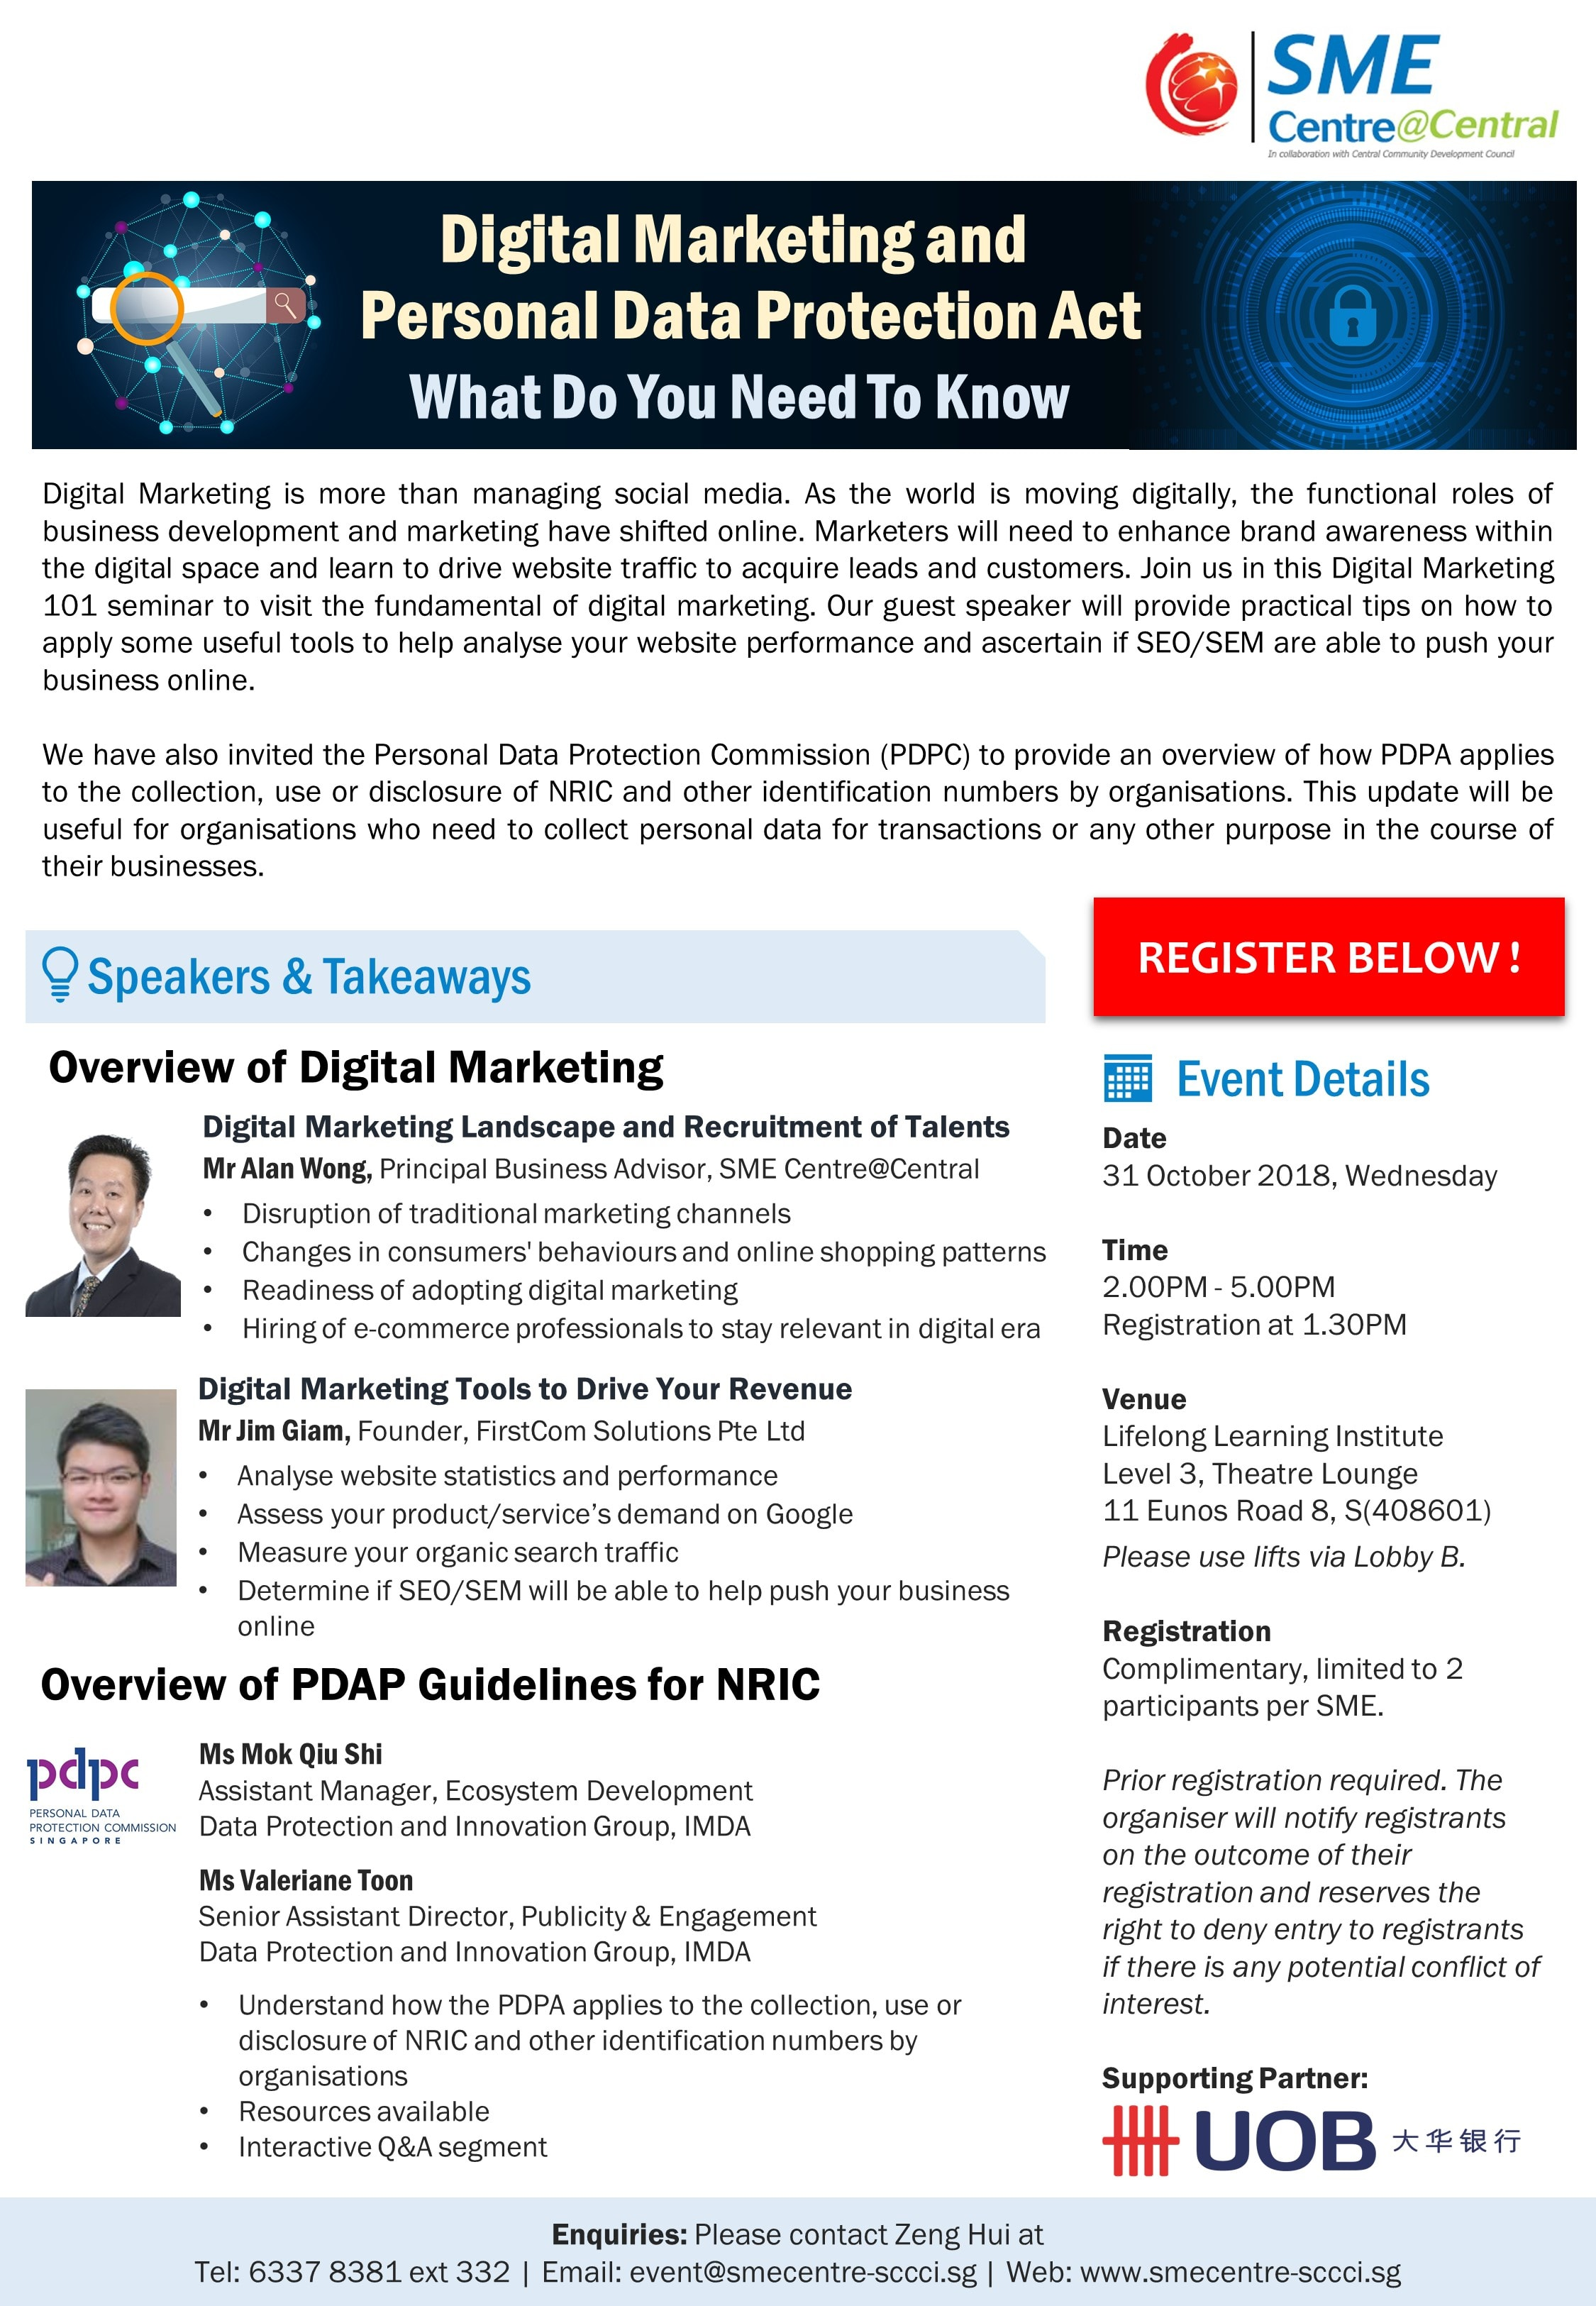 Digital Marketing and PDPA Workshop